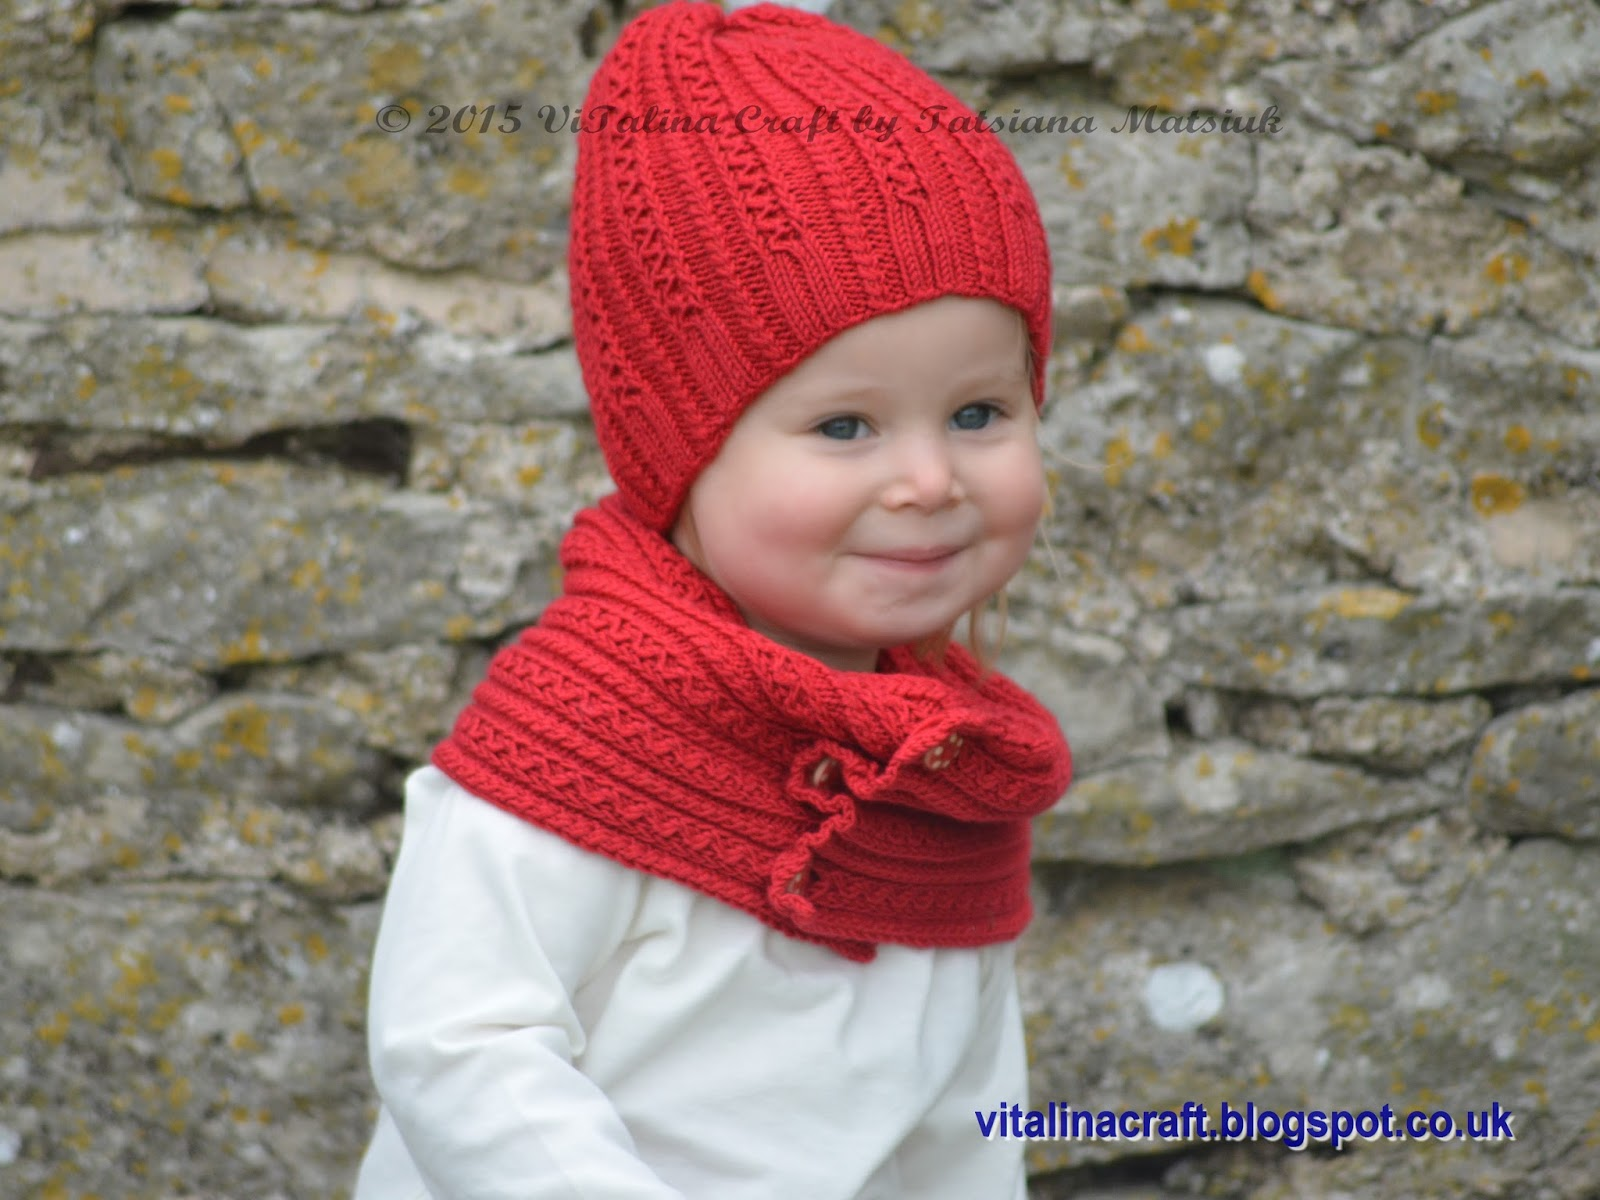 Knitting Pattern For Baby Hat And Scarf : Knitting Pattern - Tiny Cables Hat and Scarf Set (Baby, Child and Adult sizes...